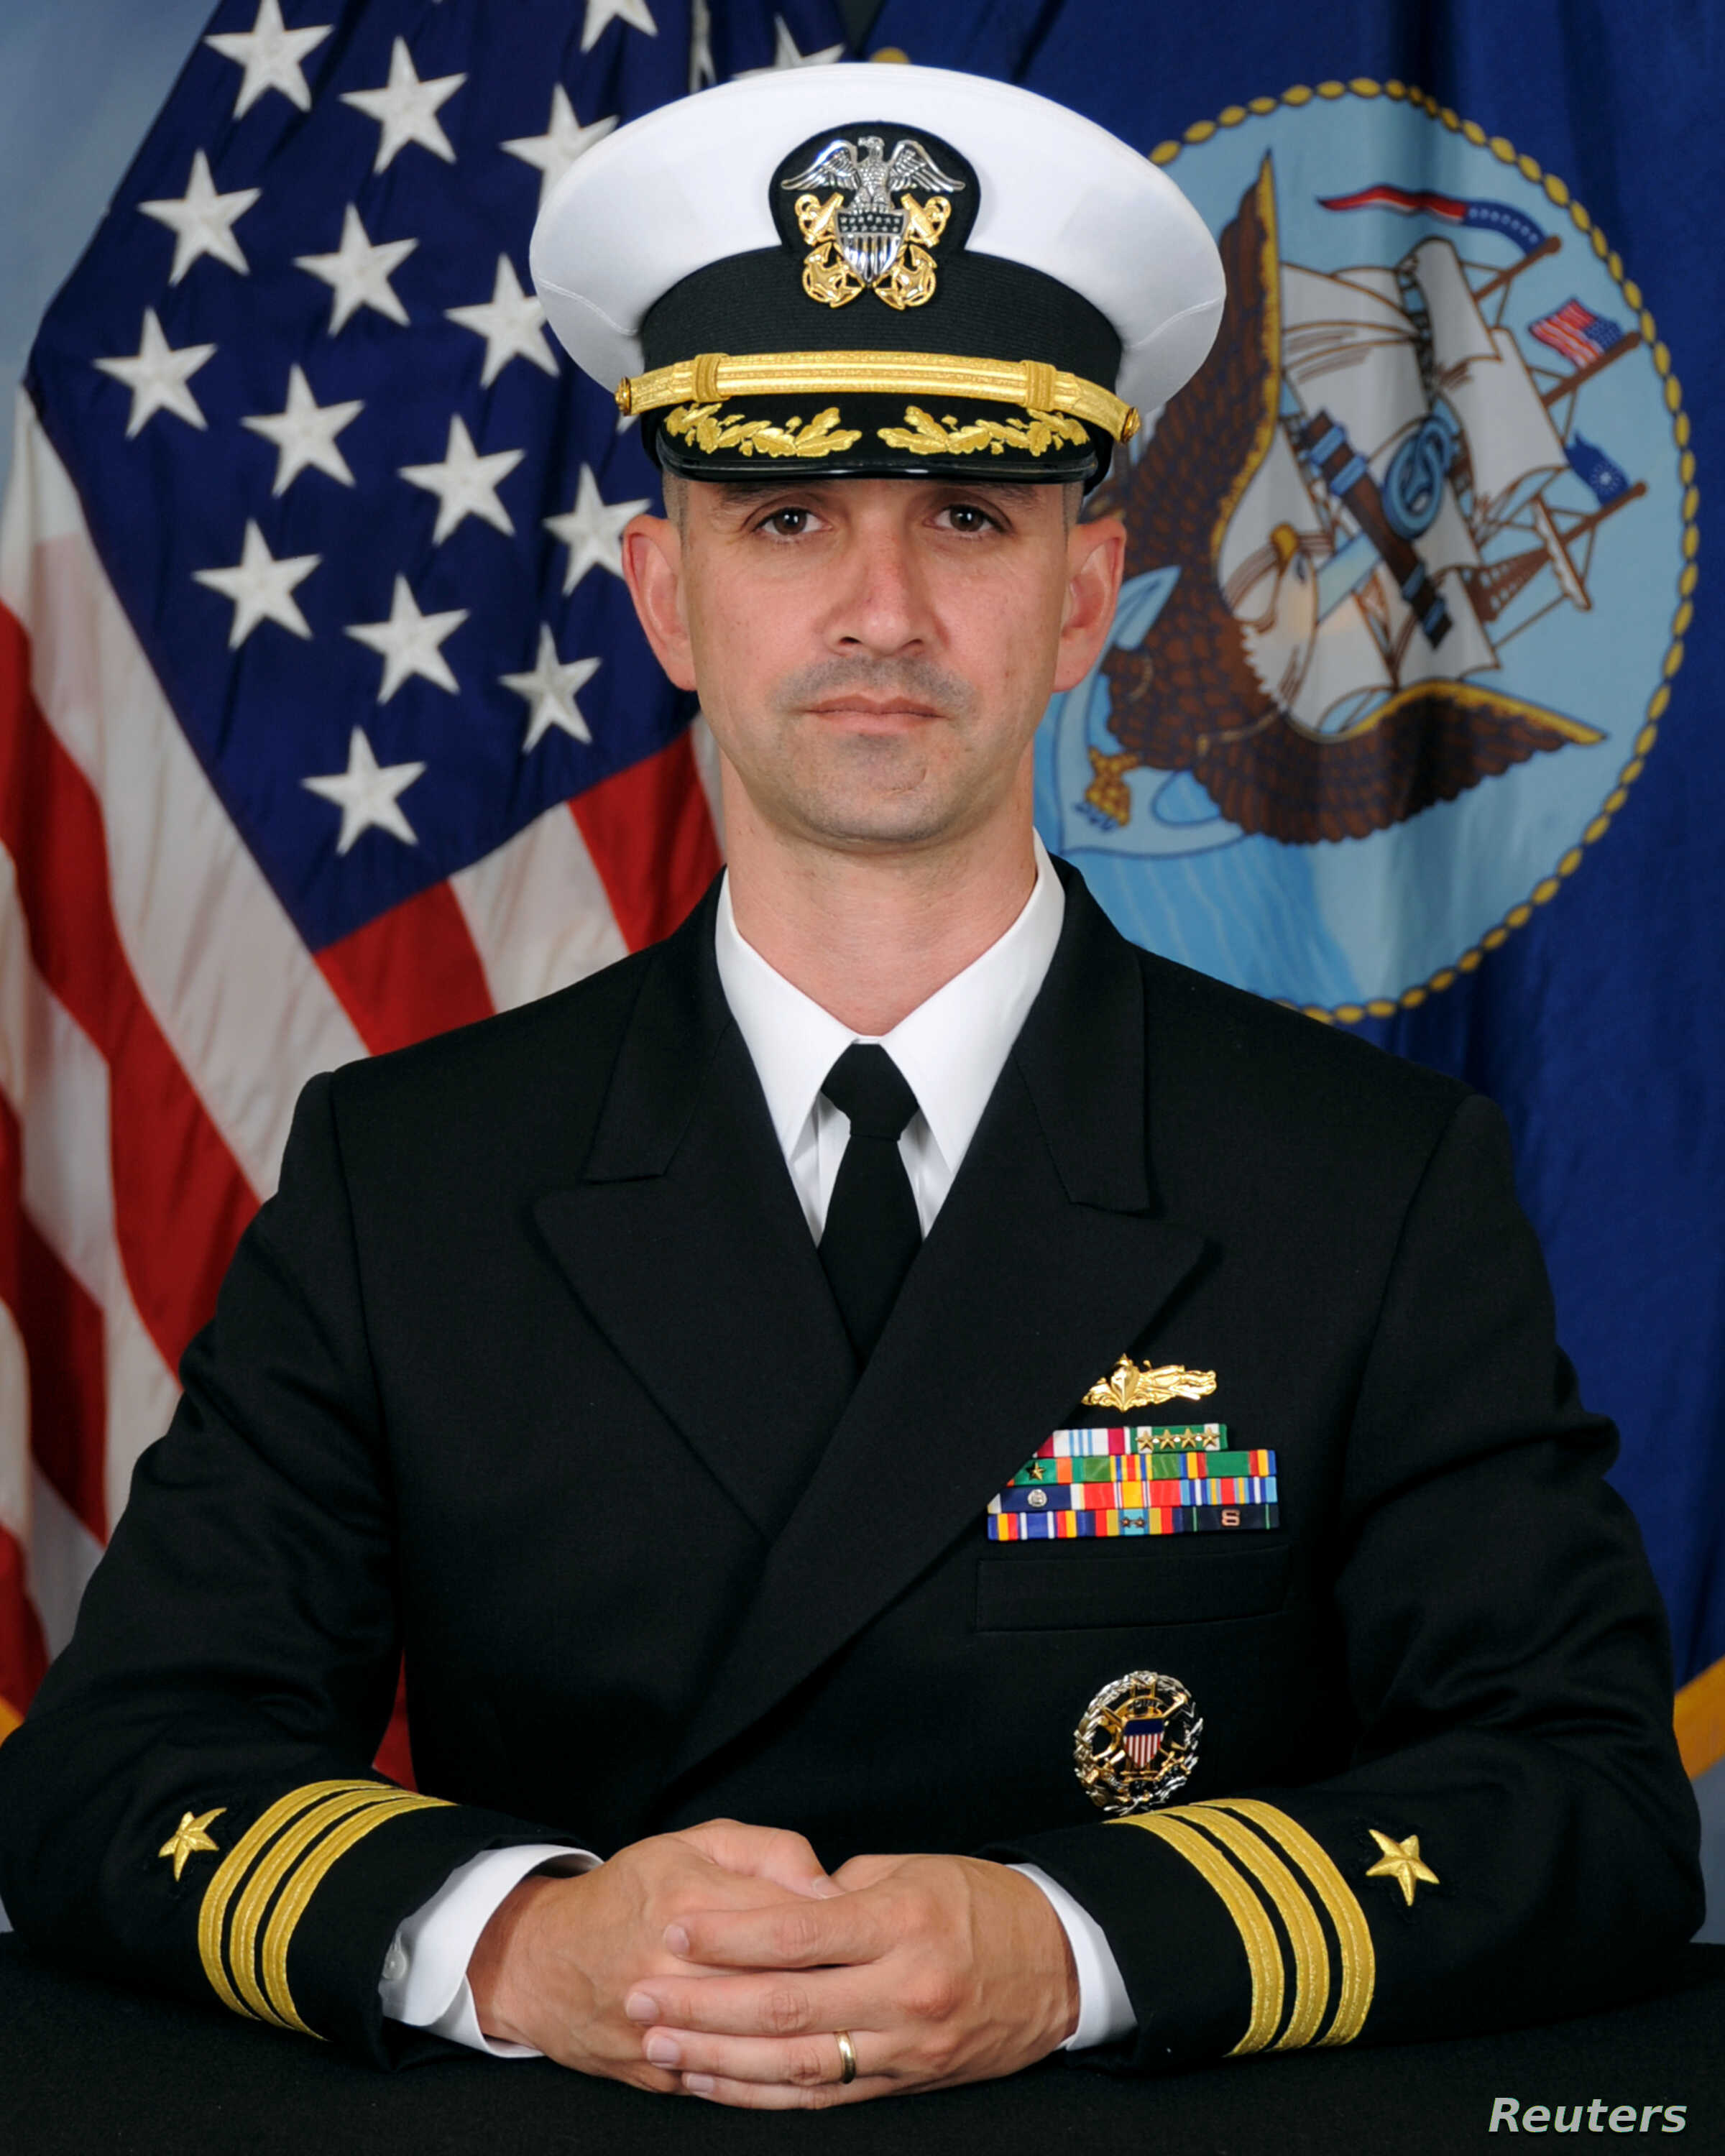 Commander Alfredo J. Sanchez, commanding officer of U.S.S. John S. McCain, is seen in this undated handout picture obtained October 11, 2017